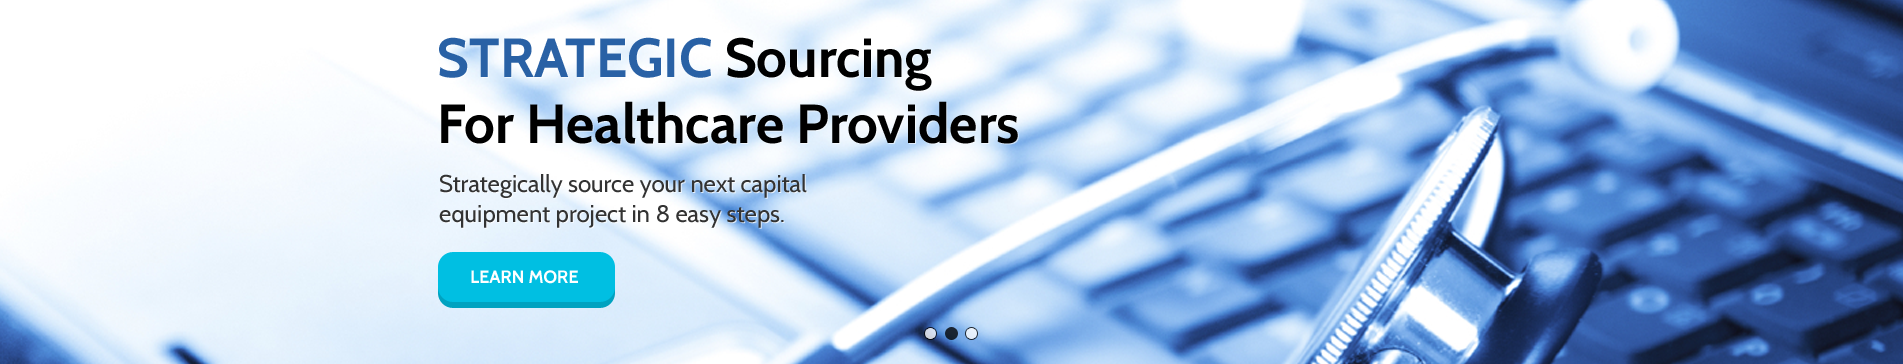 Strategic Sourcing for Healthcare Providers